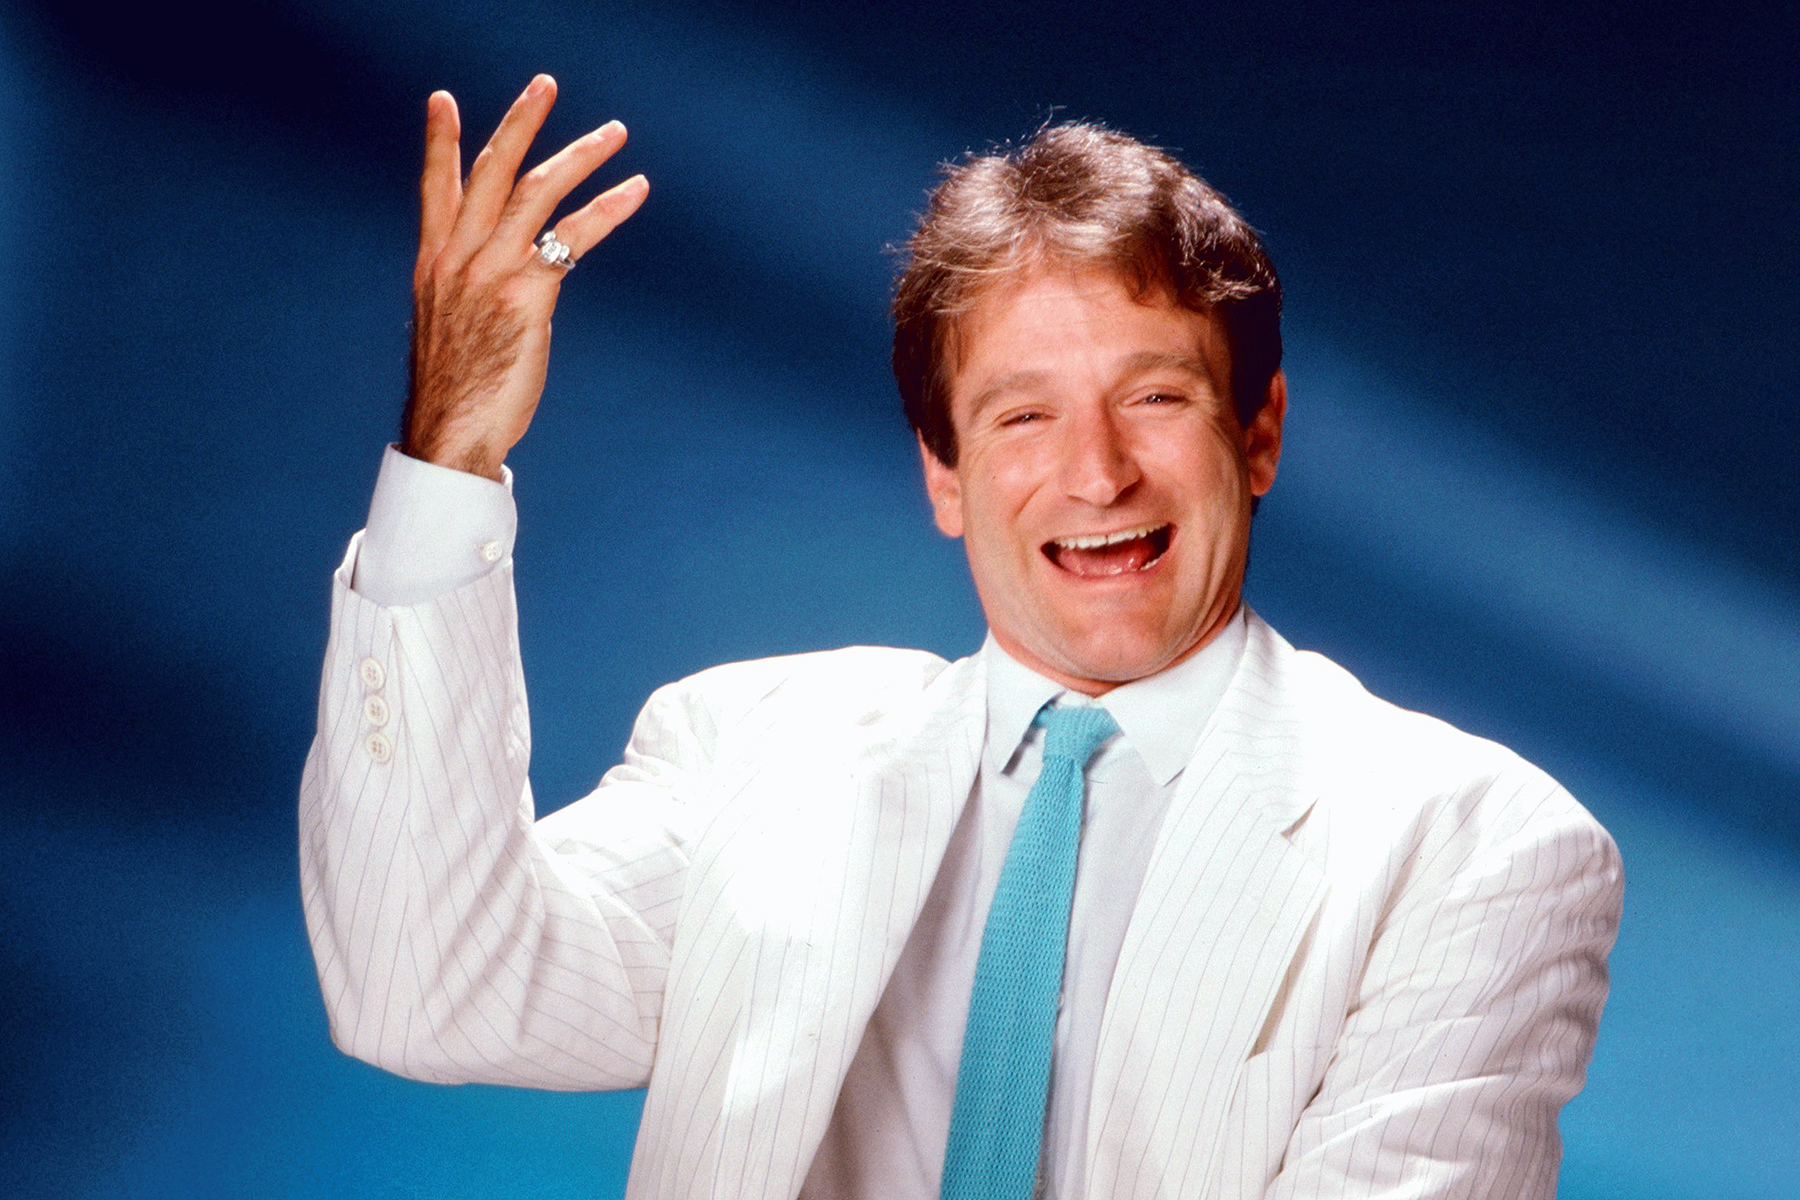 LOS ANGELES - CIRCA 1999:  Actor and comedian Robin Williams poses for a portrait circa 1999 in Los Angeles, California. (Photo by Harry Langdon/Getty Images)